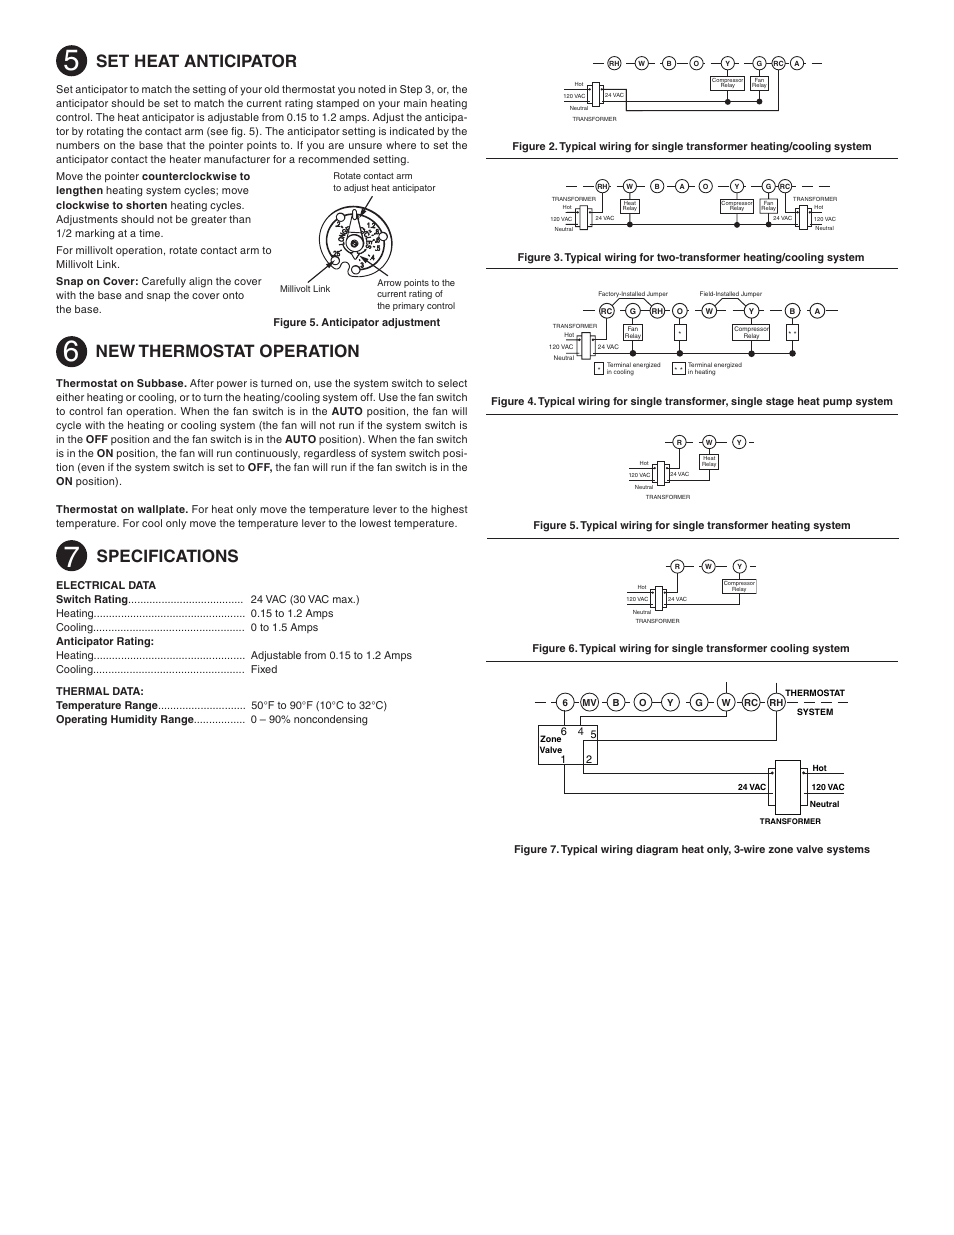 white rodgers 1e56n 444 page2 set heat anticipator, new thermostat operation, specifications 1f56n-444 wiring diagram at bayanpartner.co